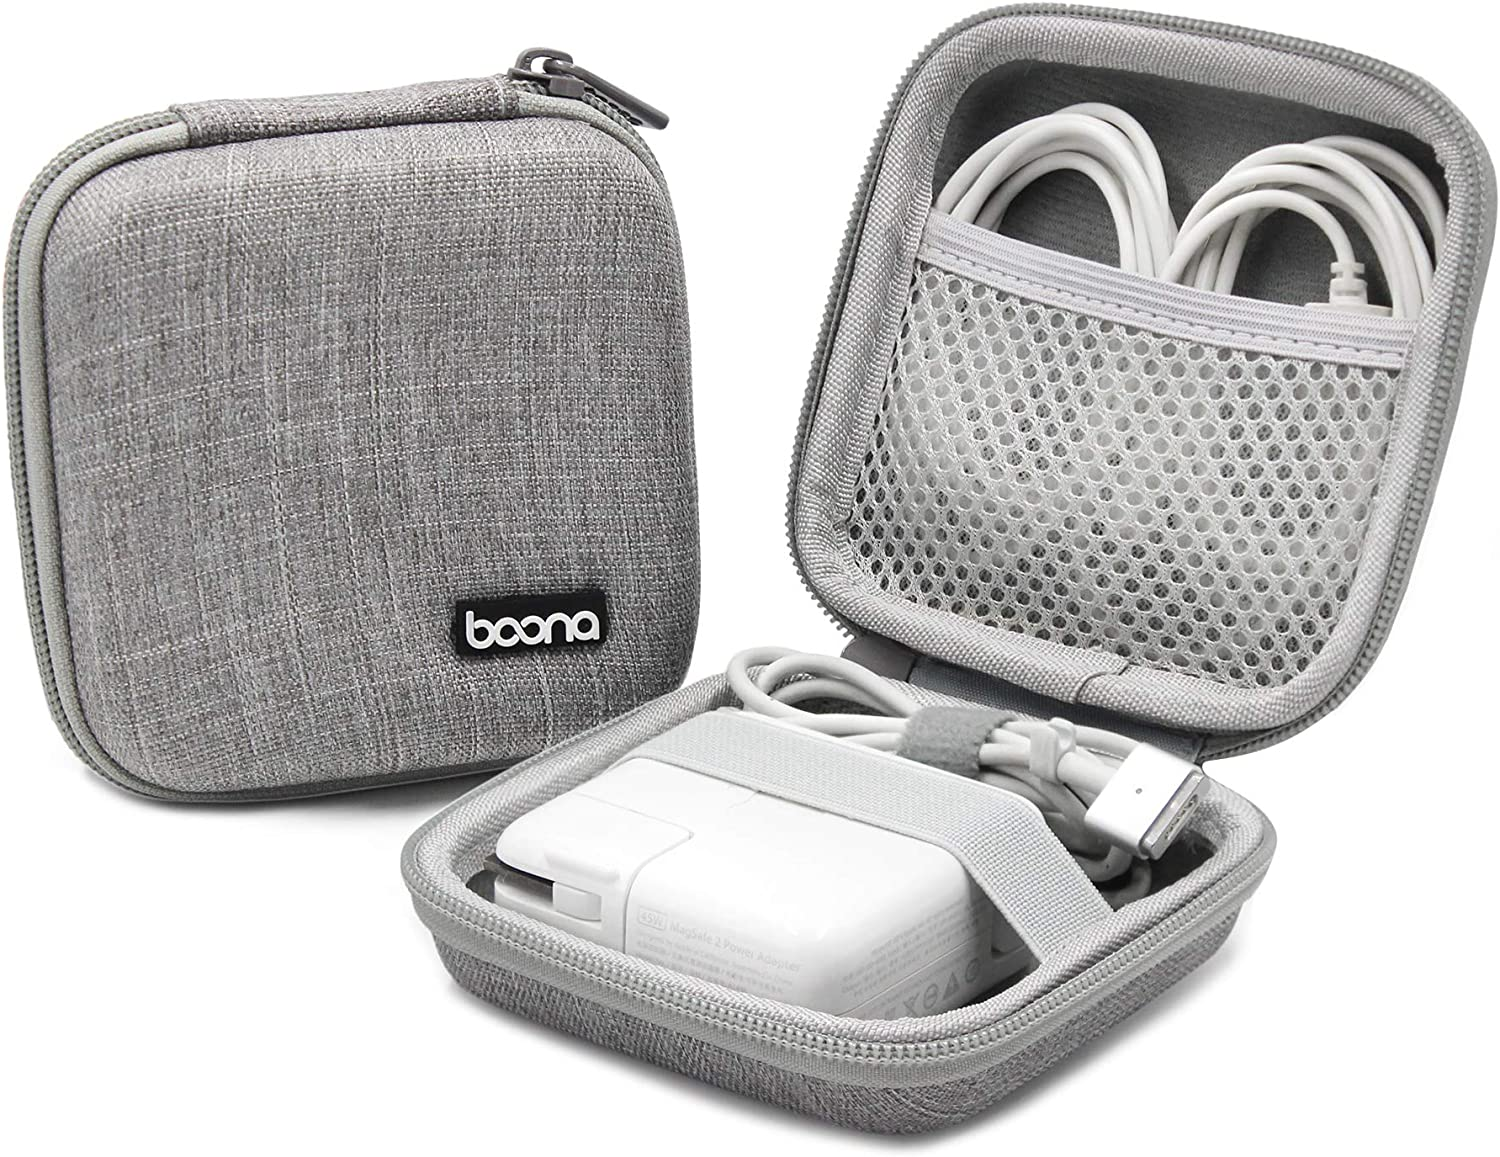 BOONA Power Adapter Exclusive Organizer Case, Hard Shell Portable Electronics Accessories Travel Storage Carrying Bag for Laptop, Gadgets, Cables, Cords, USB Drives, Earphones - Small, Grey